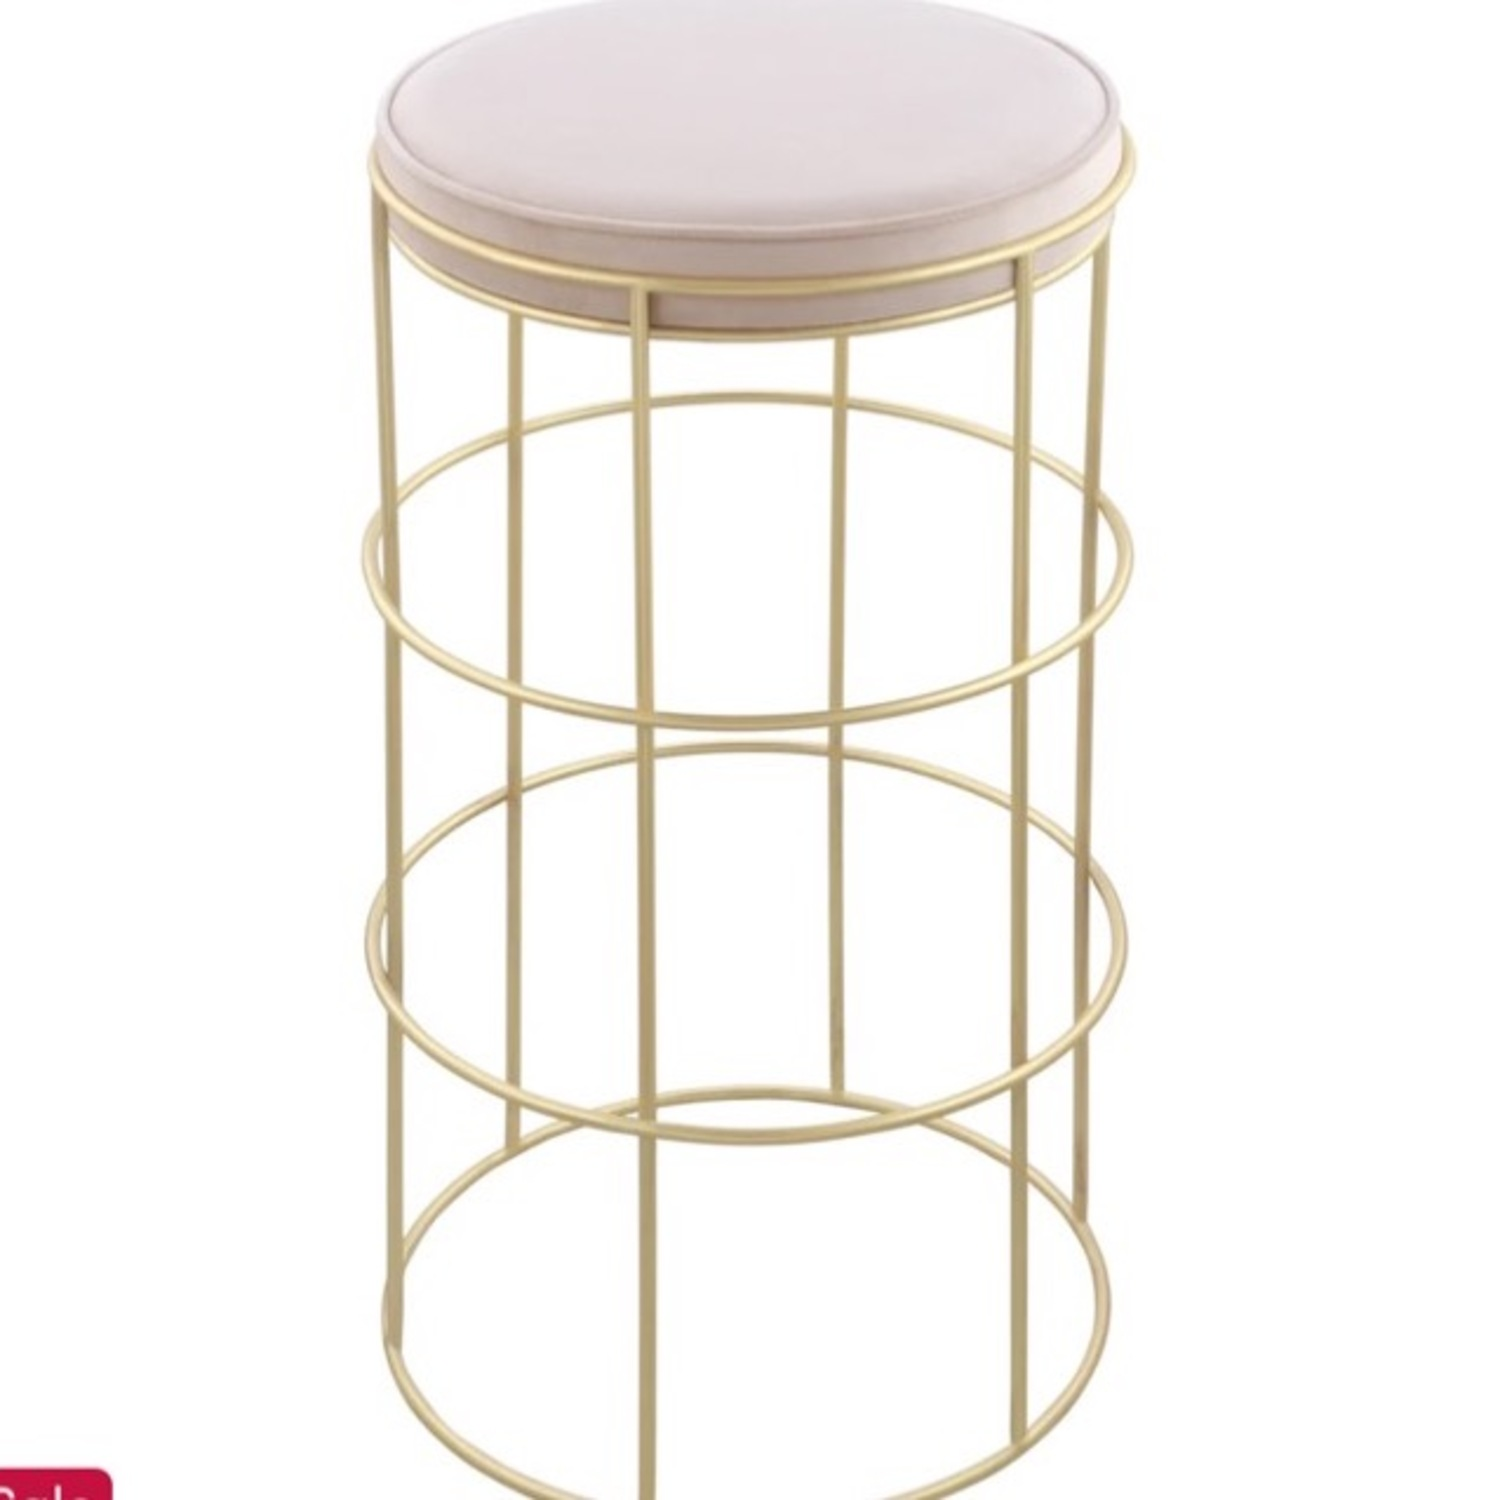 Pink & Gold Counter Stool - image-3